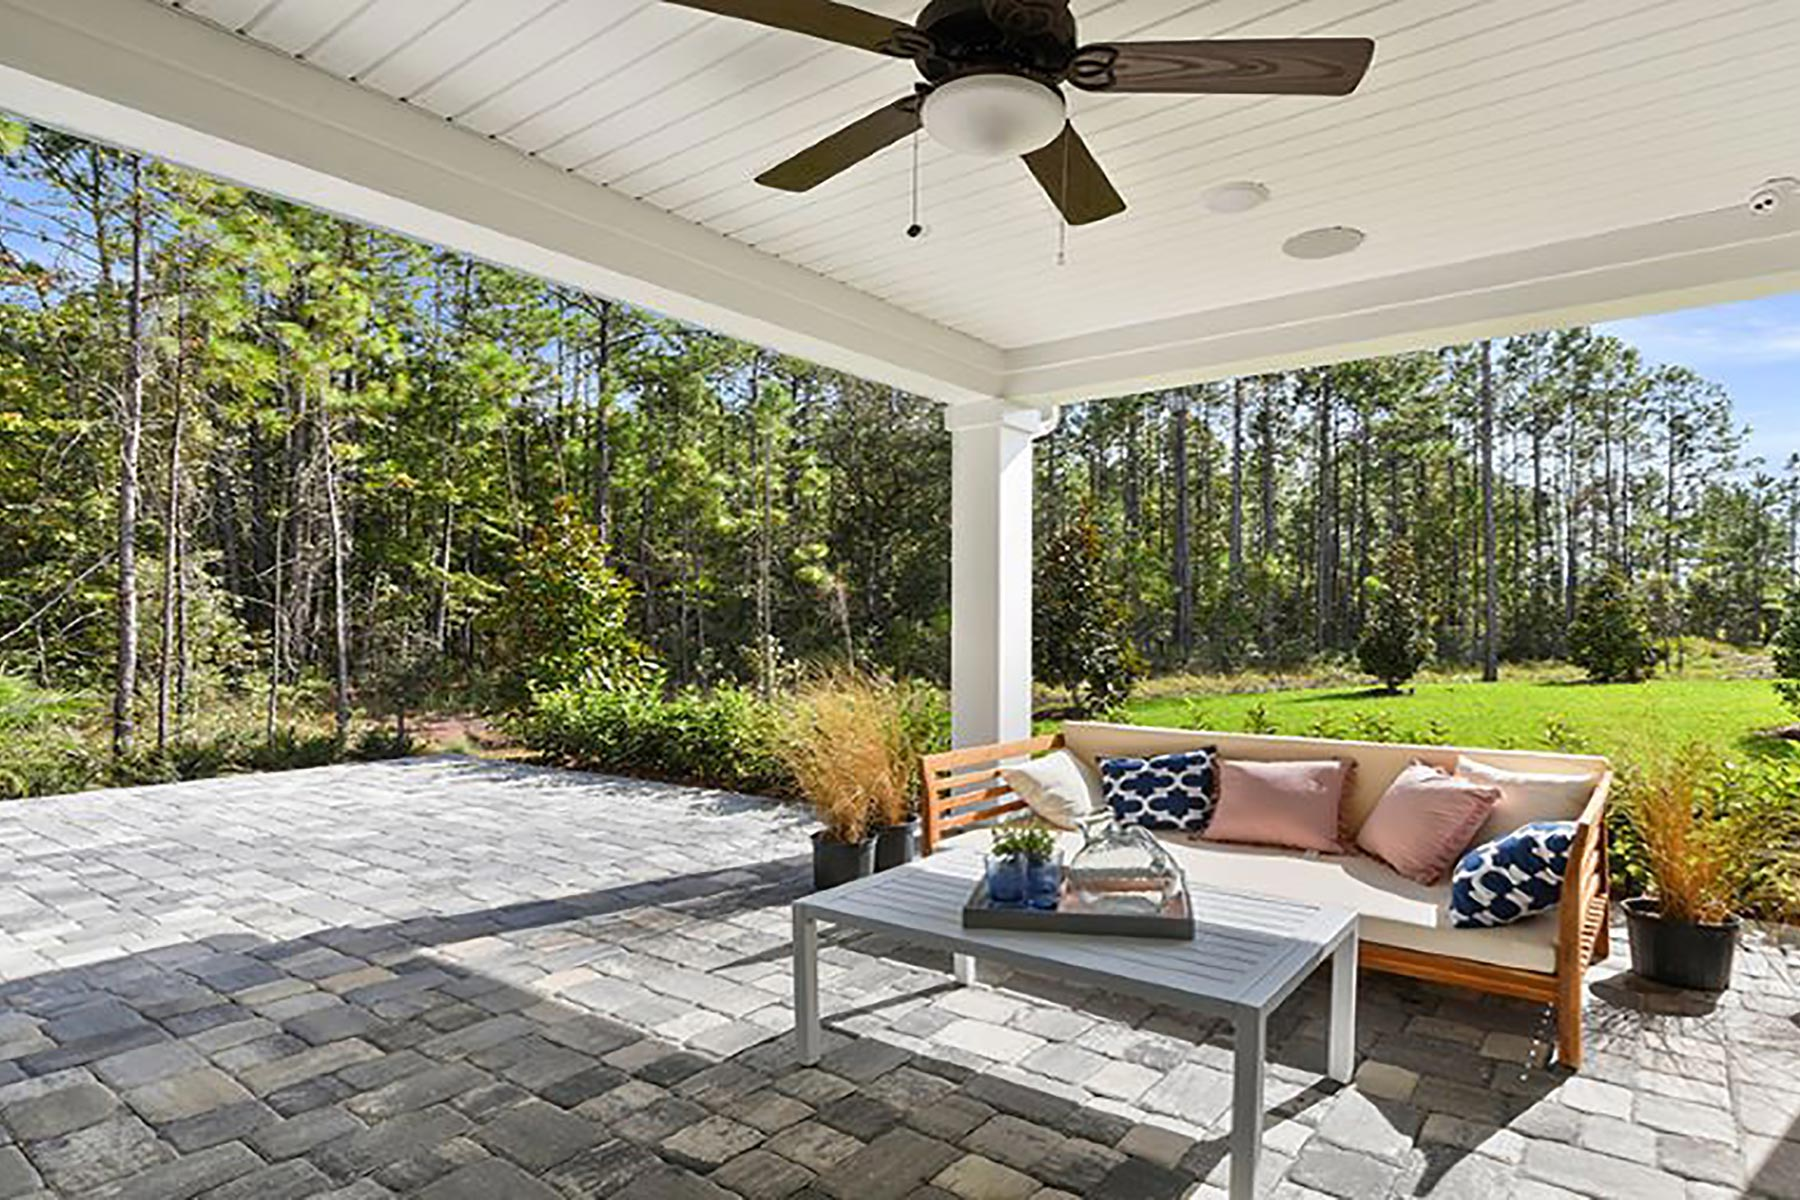 River Plan Patio at RiverTown - WaterSong in St. Johns Florida by Mattamy Homes